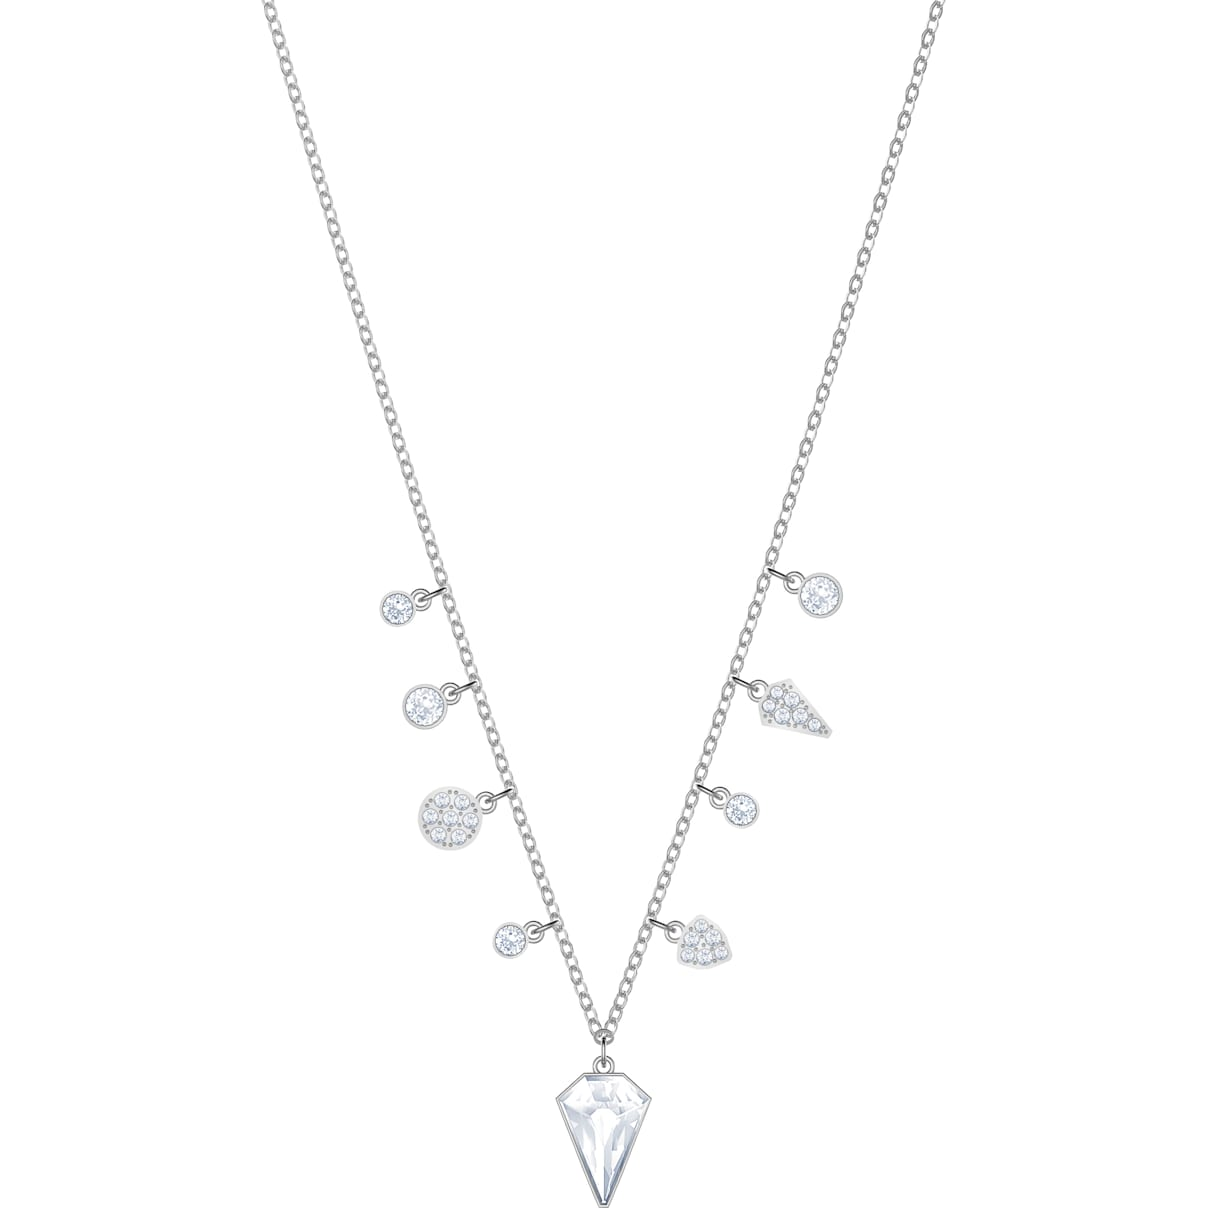 Swarovski Lucy Kite Choker, White, Rhodium plating